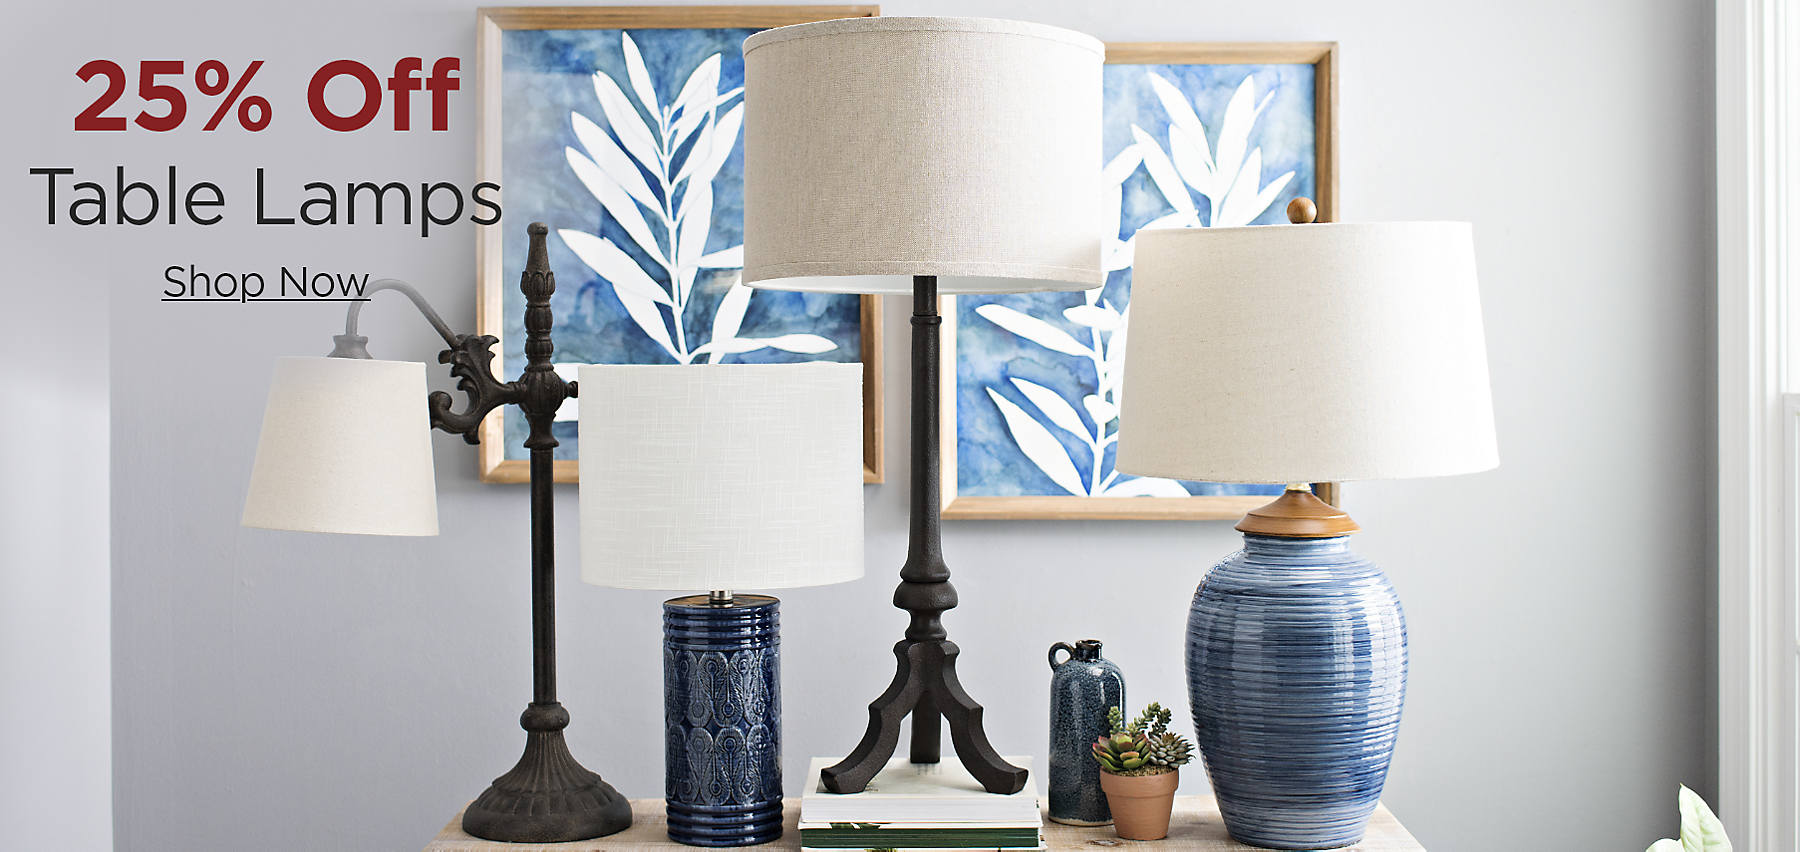 25% Off Table Lamps Shop Now